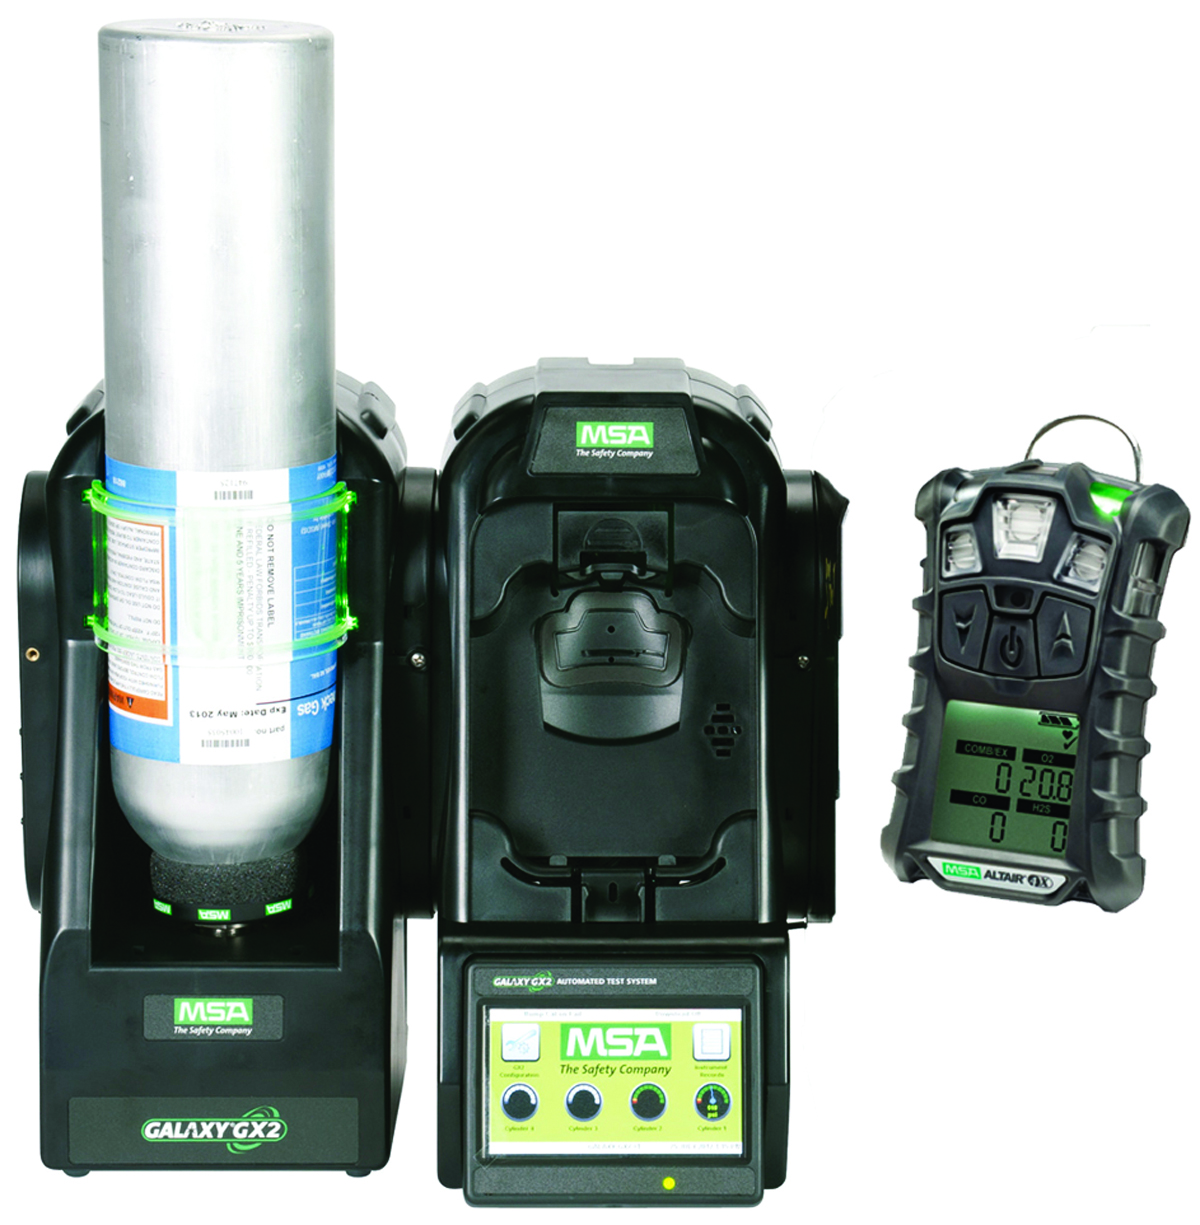 10128642 - GALAXY GX2 Automated Test System-4/4X Multigas Detector: 1 Valve (for Use with 1 Calibration Gas Cylinder)-----UOM: 1/EA